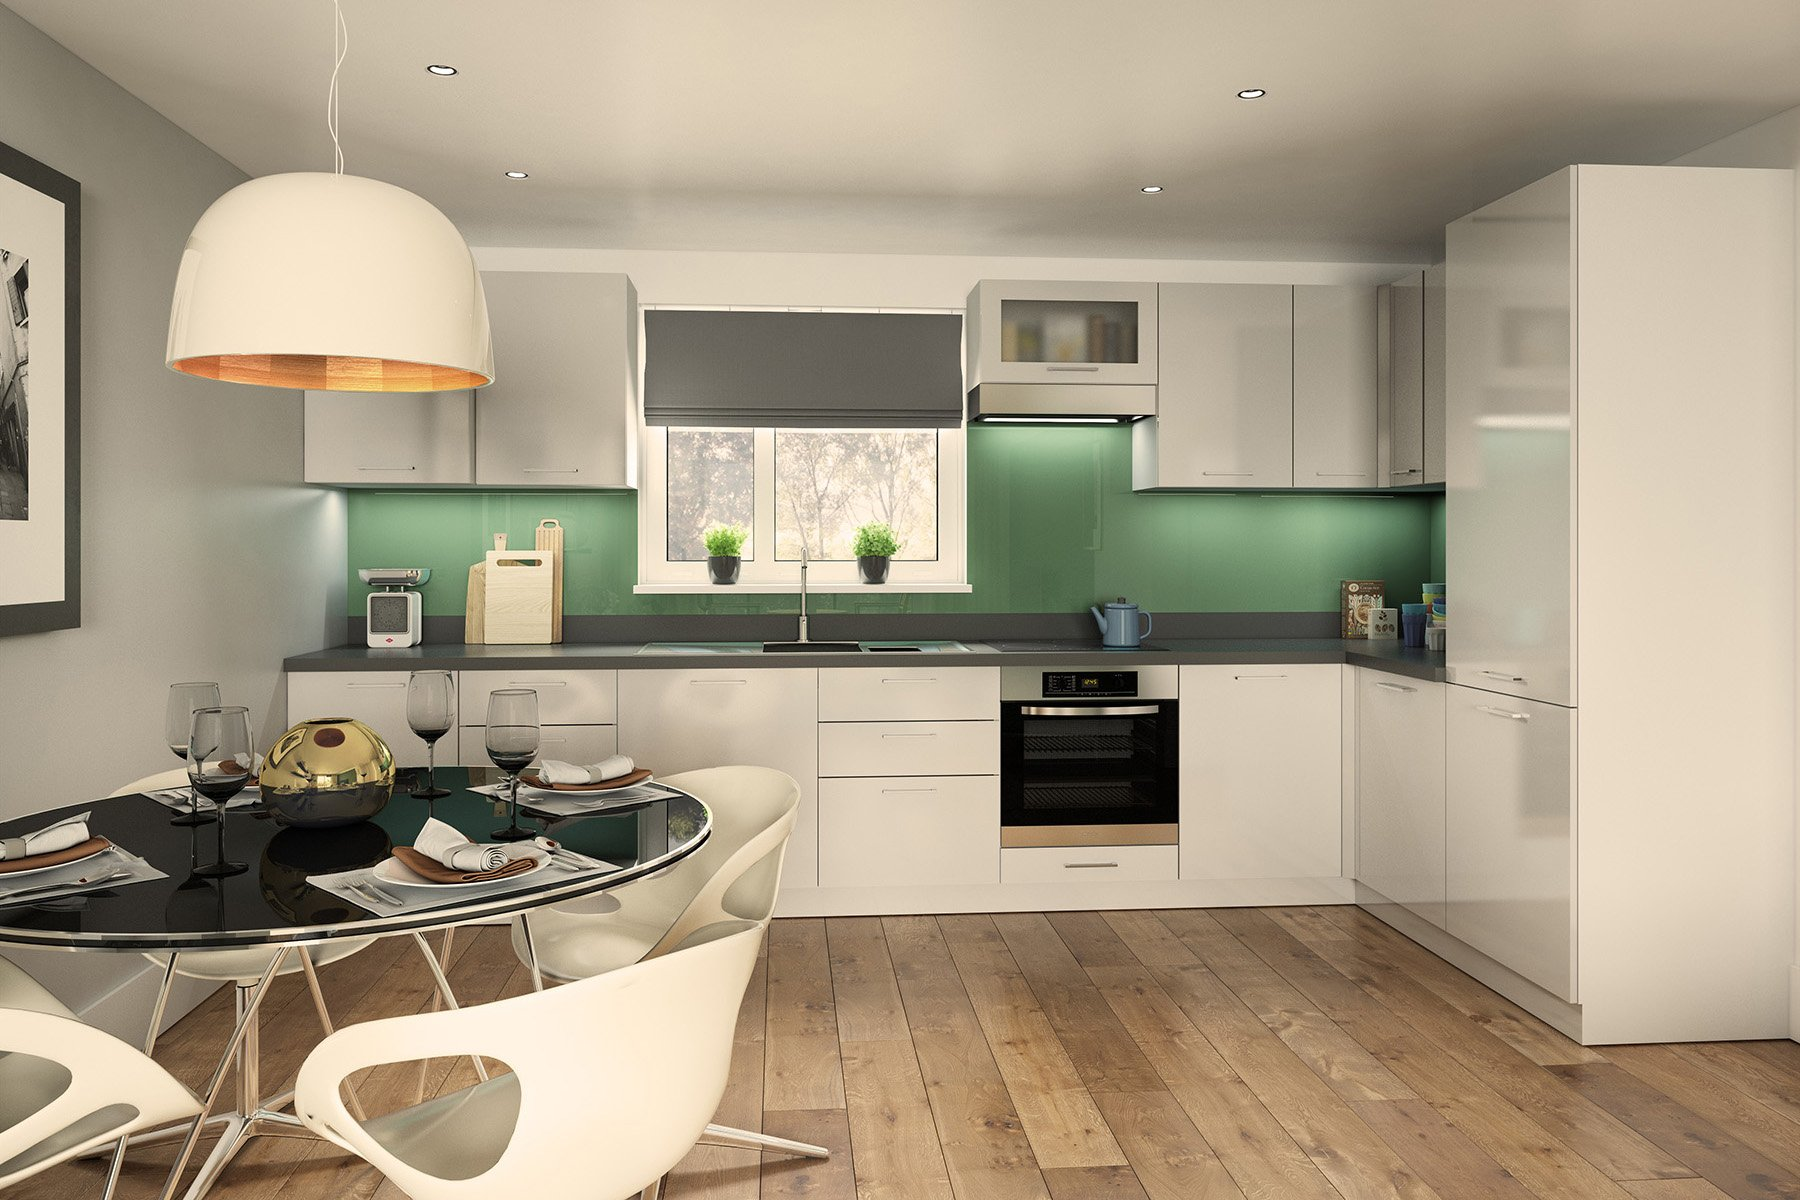 Generic_Type1_Kitchen